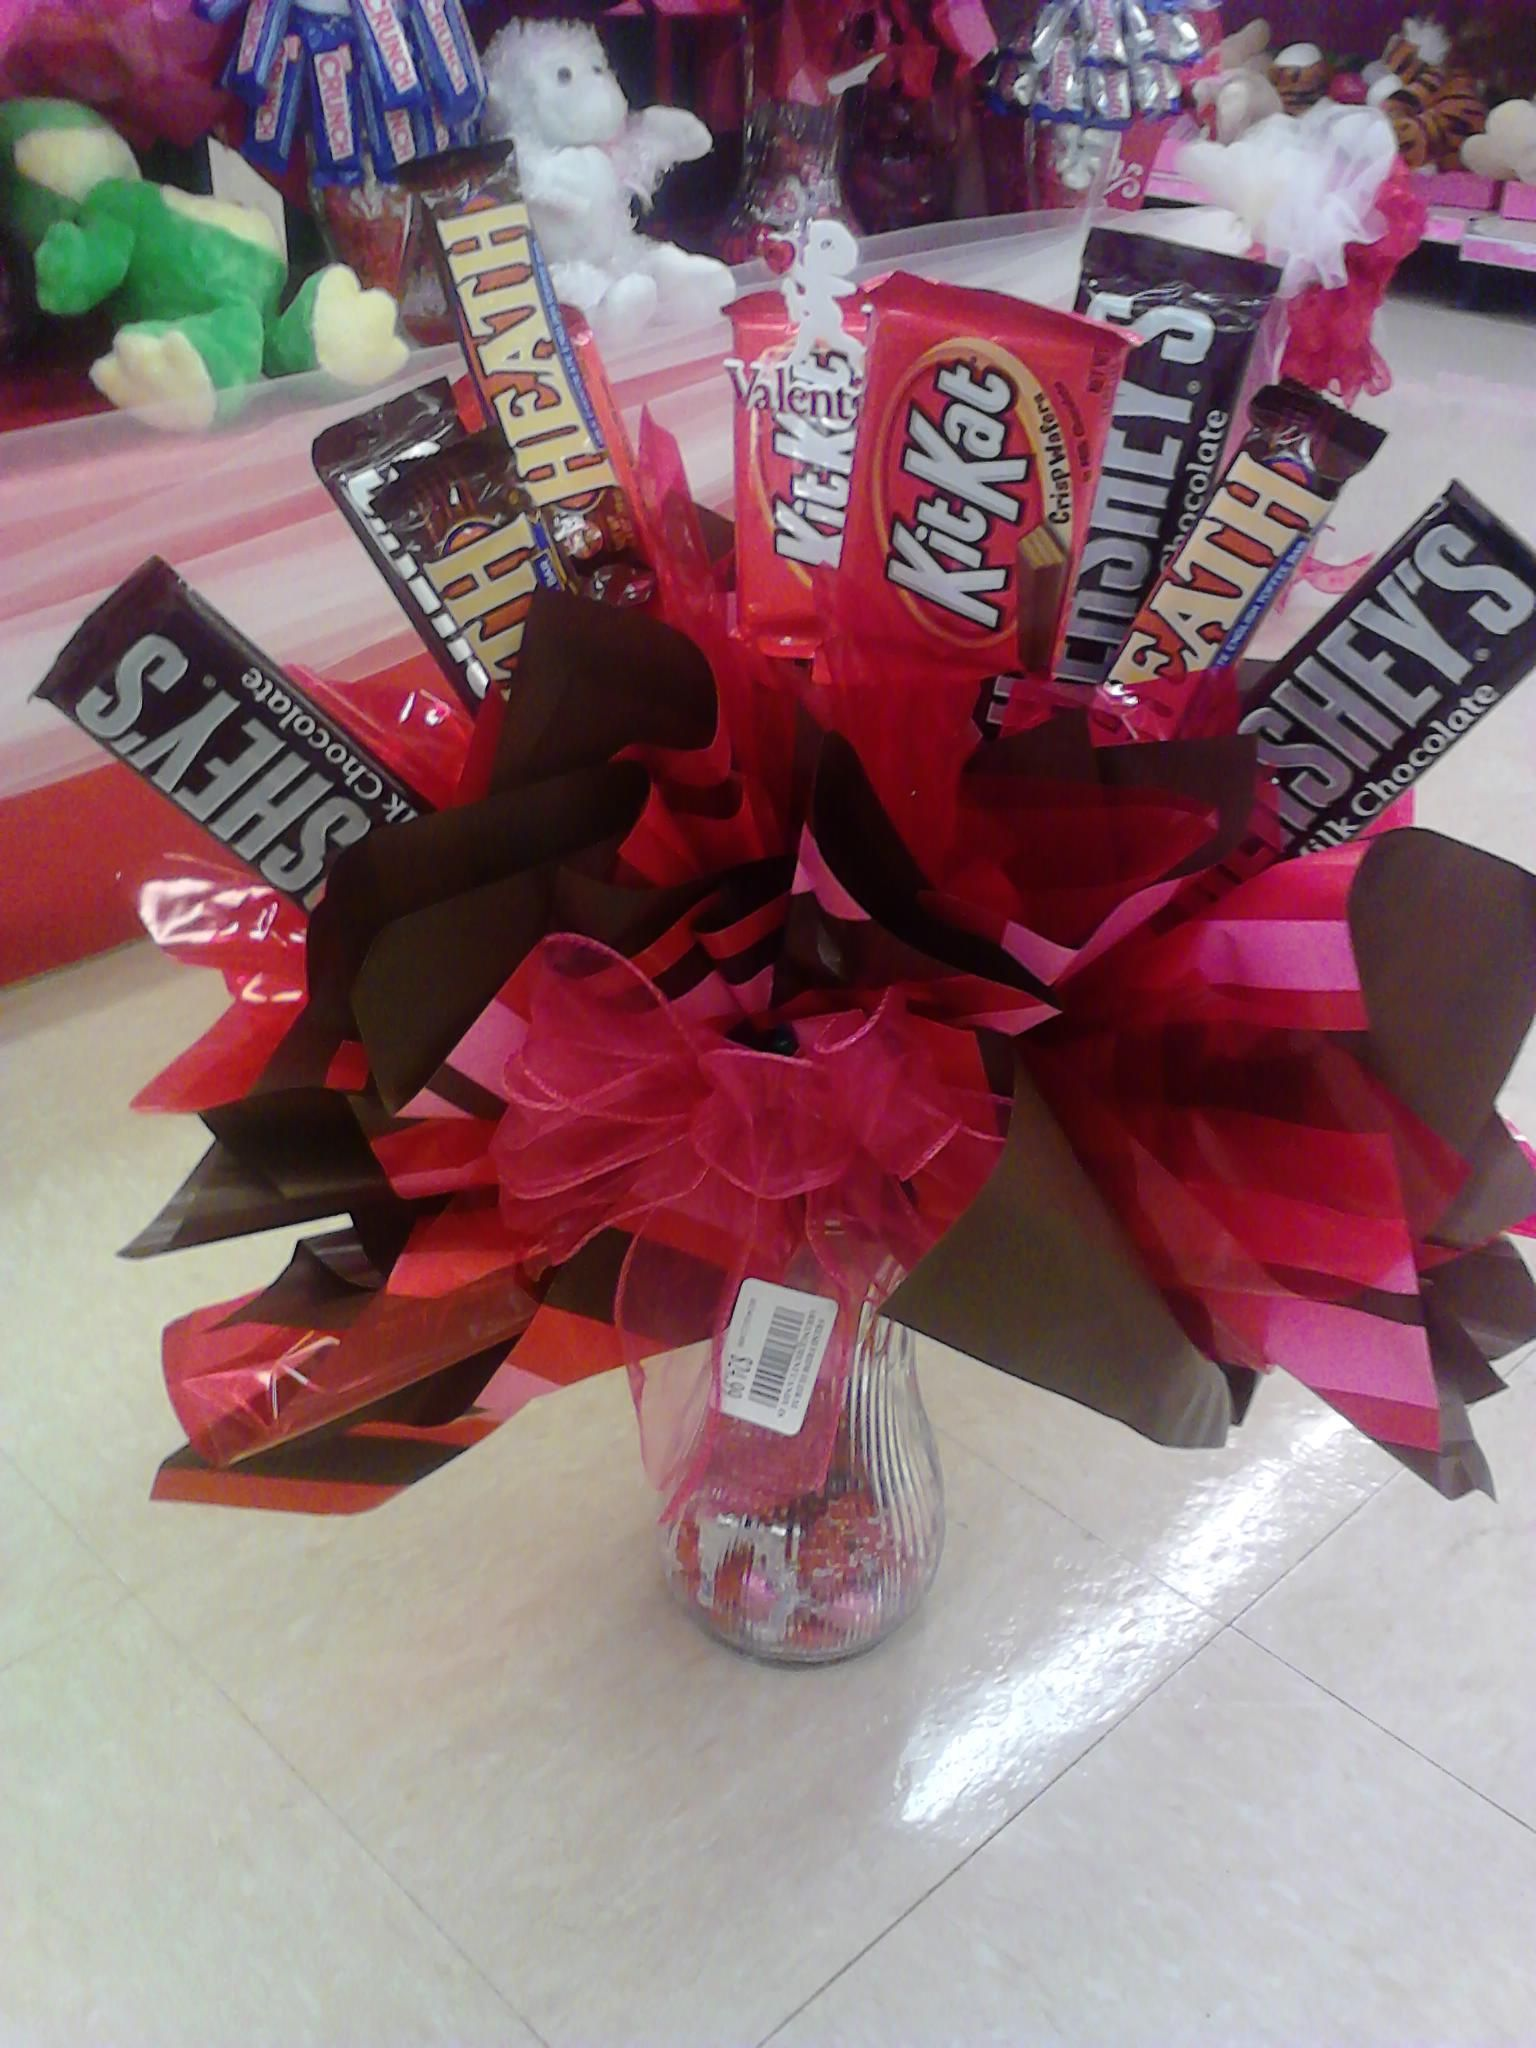 So Easy To Make With Vase Styrofoam Tissue Paper Wooden Dowels And Candy Bars